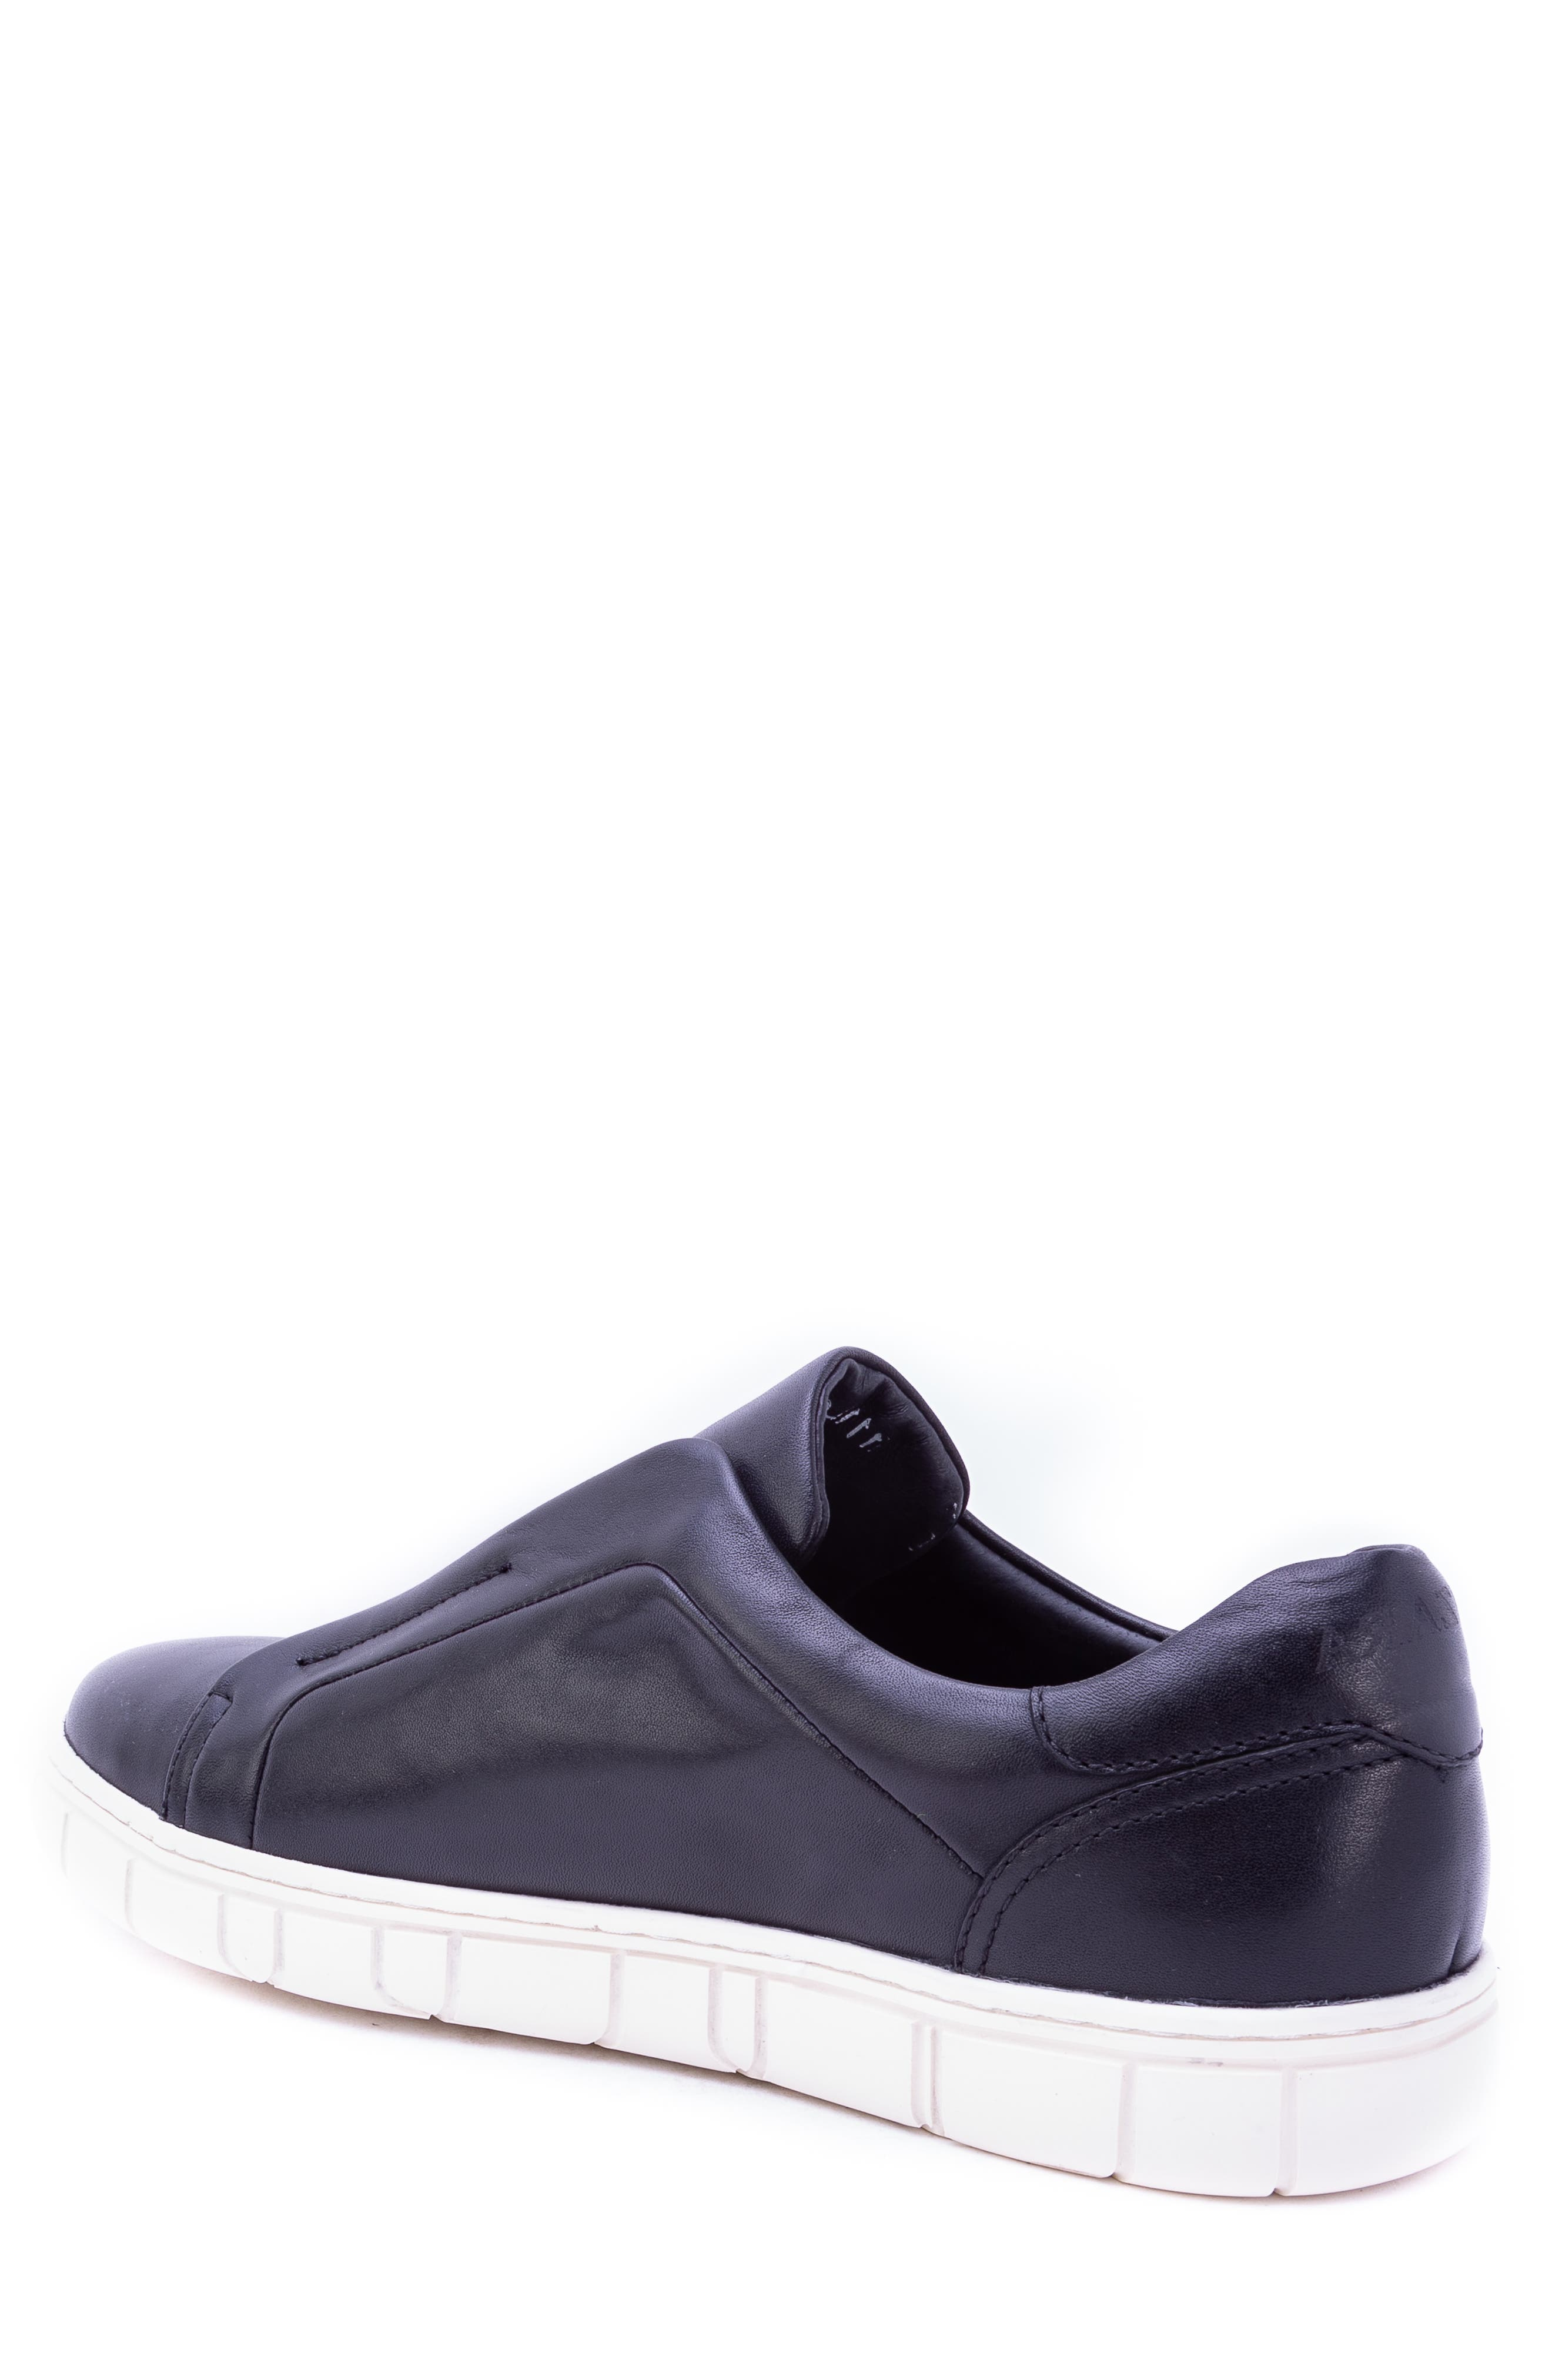 Sorgh Laceless Sneaker,                             Alternate thumbnail 2, color,                             BLACK LEATHER